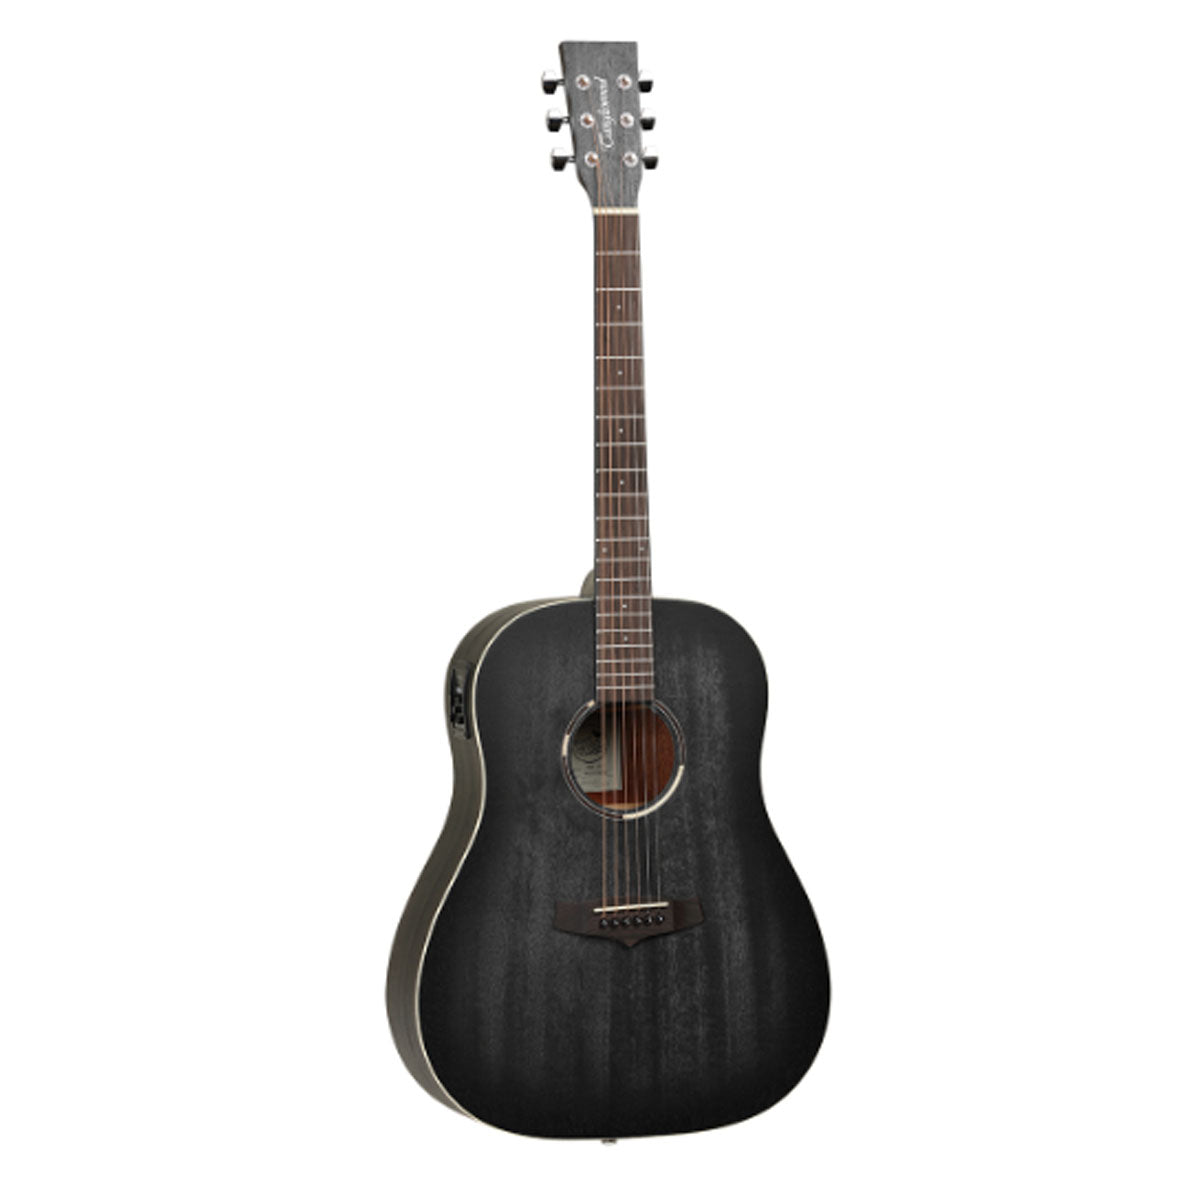 Tanglewood Blackbird Acoustic Guitar Sloped Shoulder Dreadnought Smokestack Satin w/ Pickup